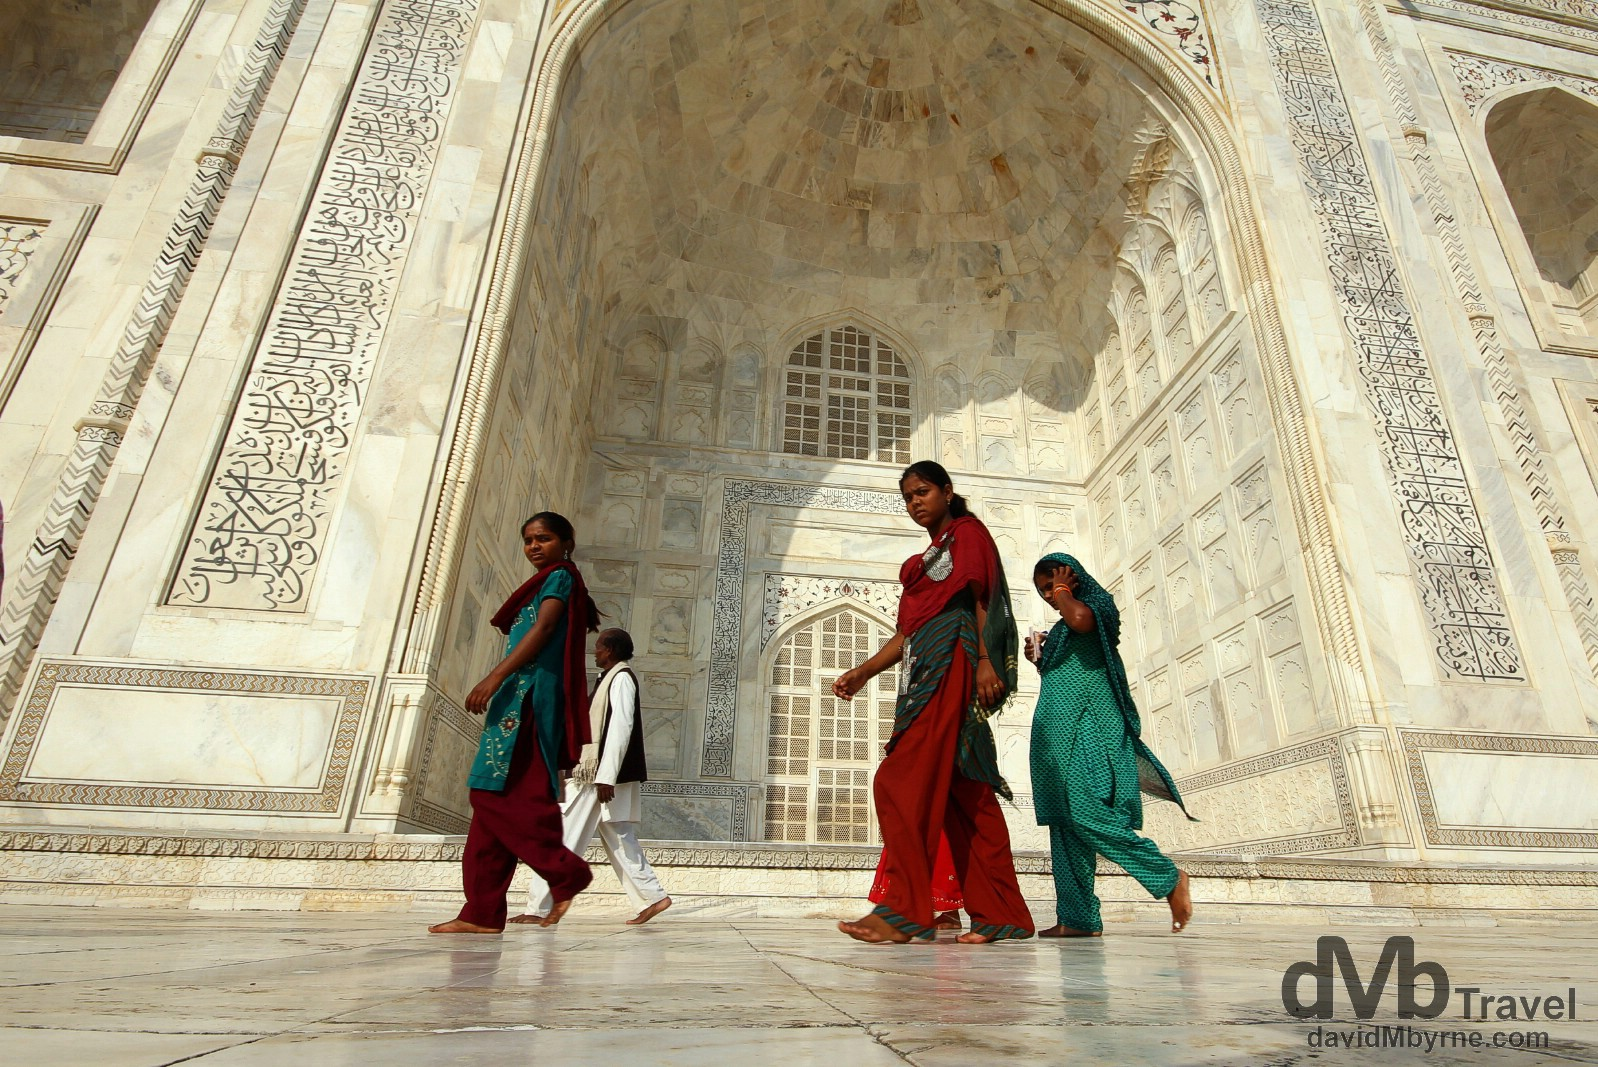 Walking on the raised marble platform surrounding the Taj Mahal in Agra, Uttar Pradesh, India. October 11th 2012.